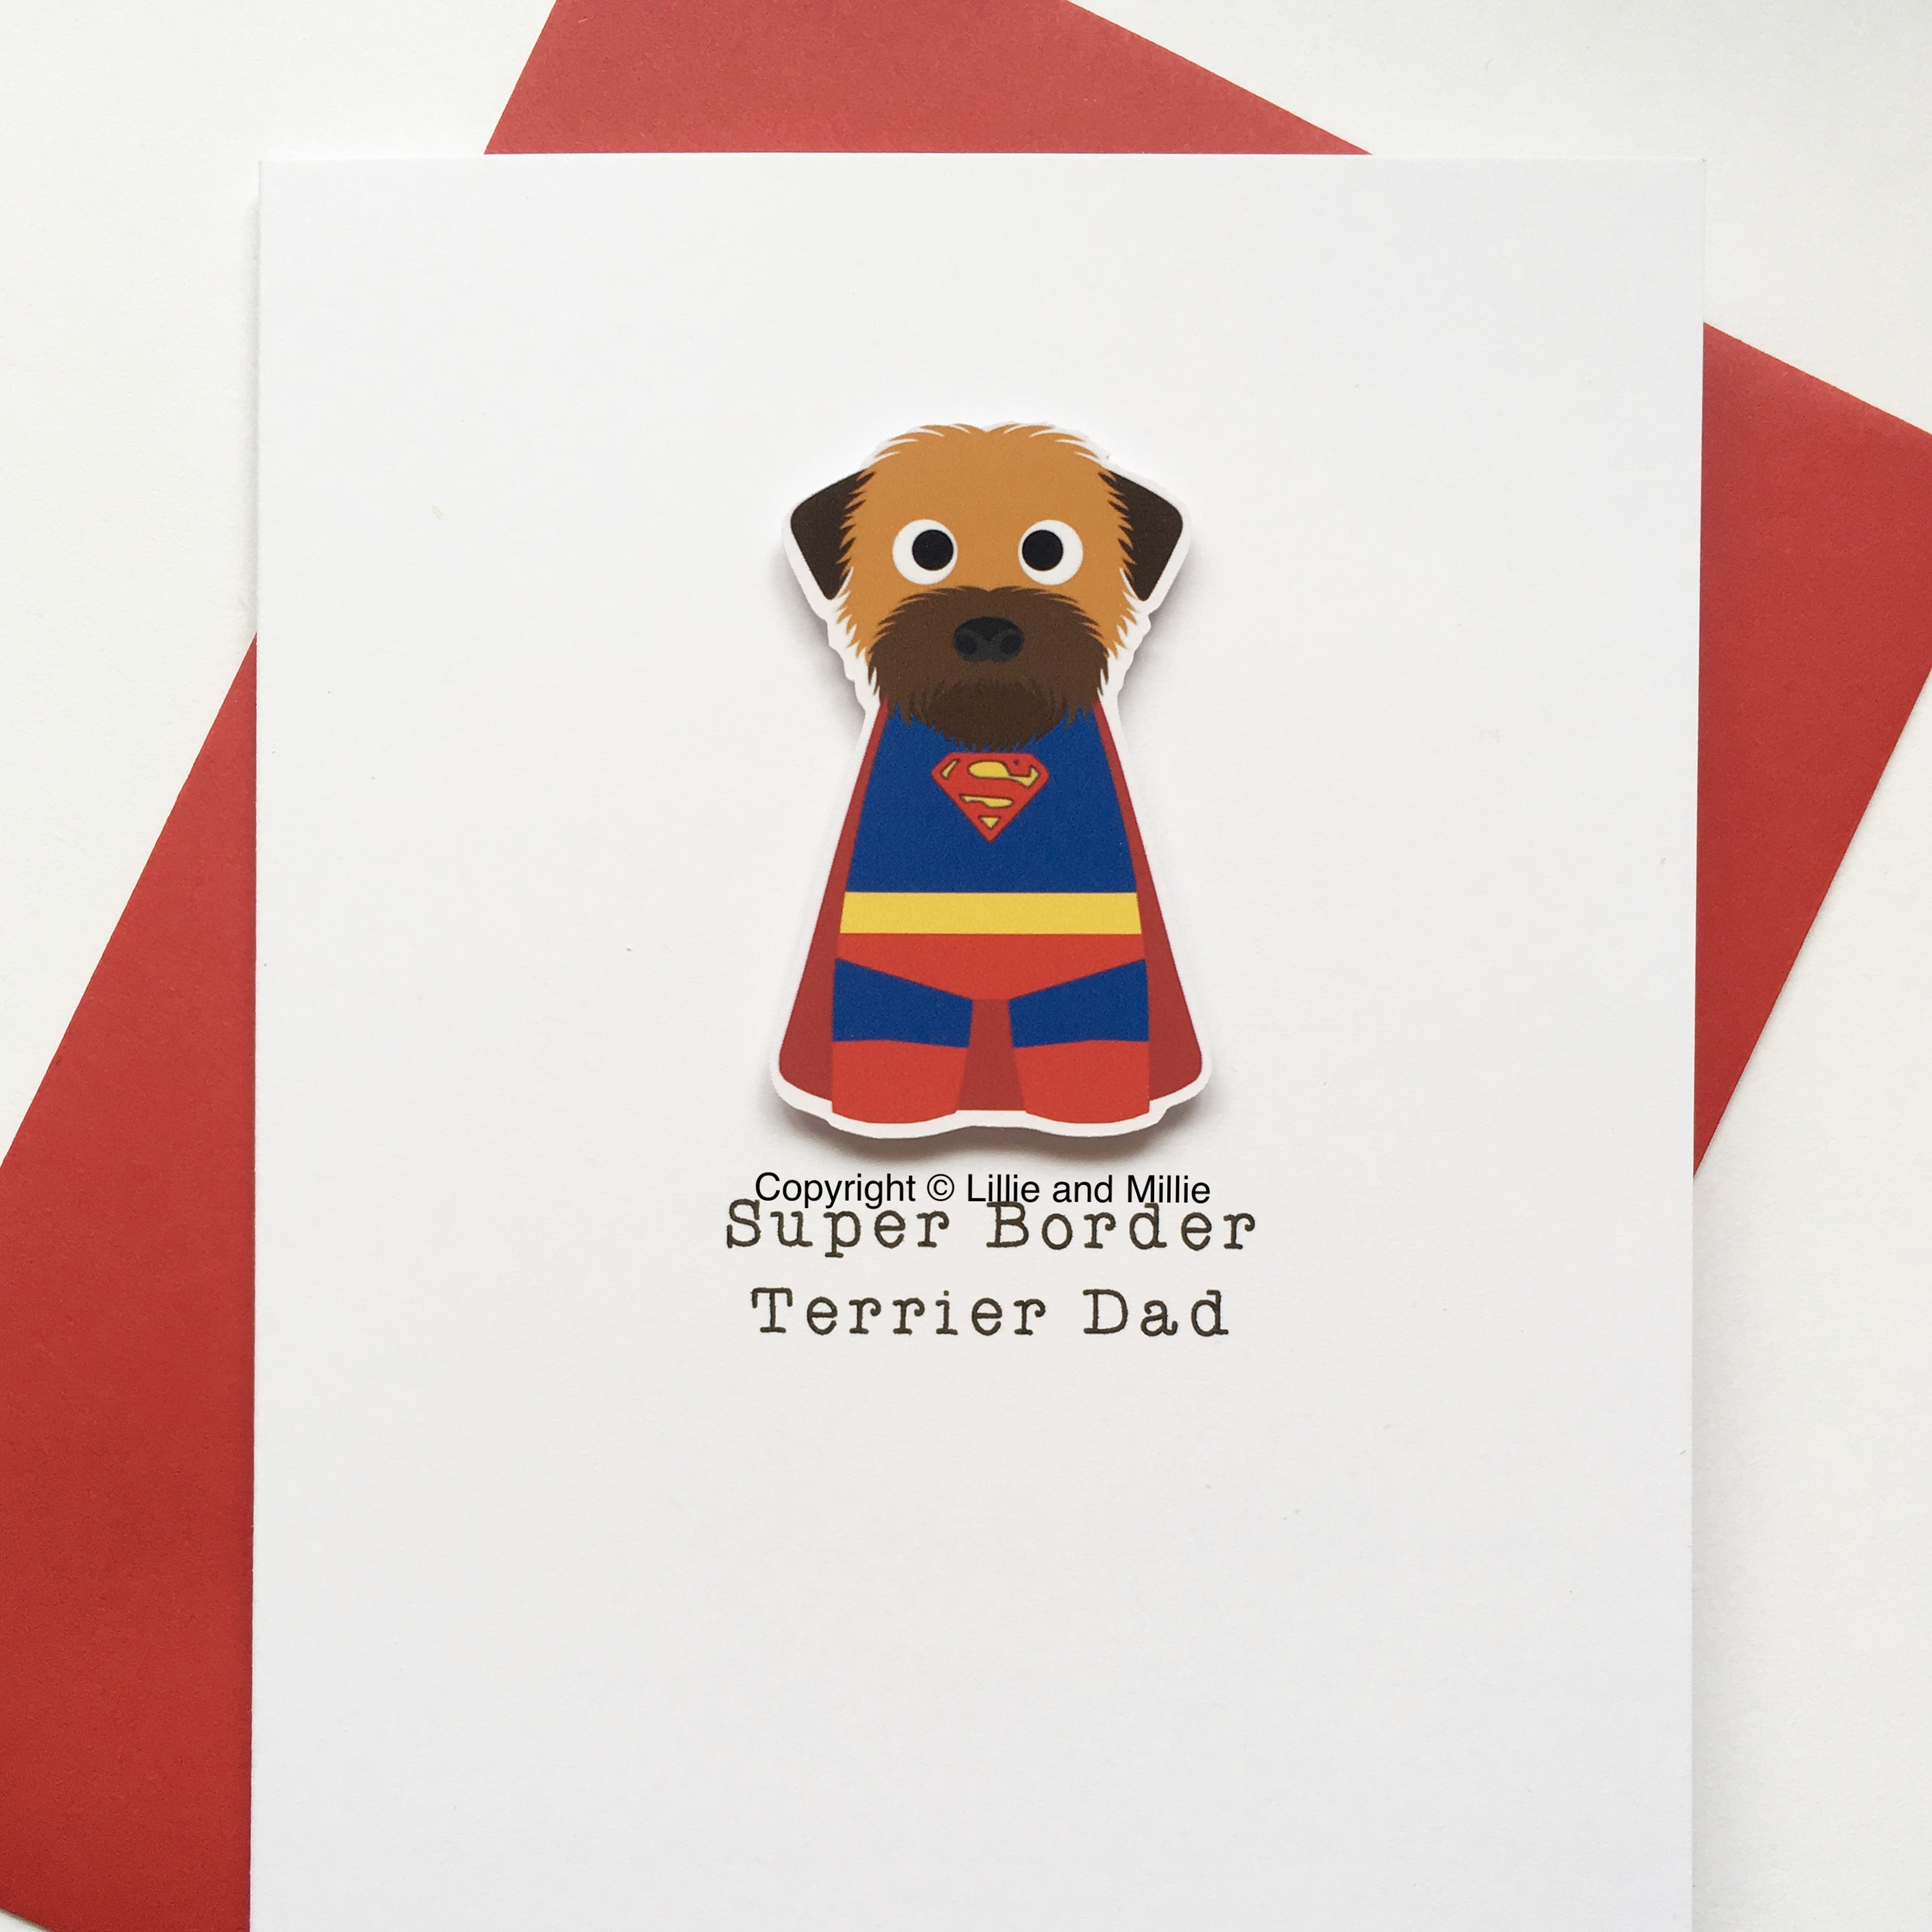 Cute and Cuddly Super Grizzle and Tan Border Terrier Dad Card